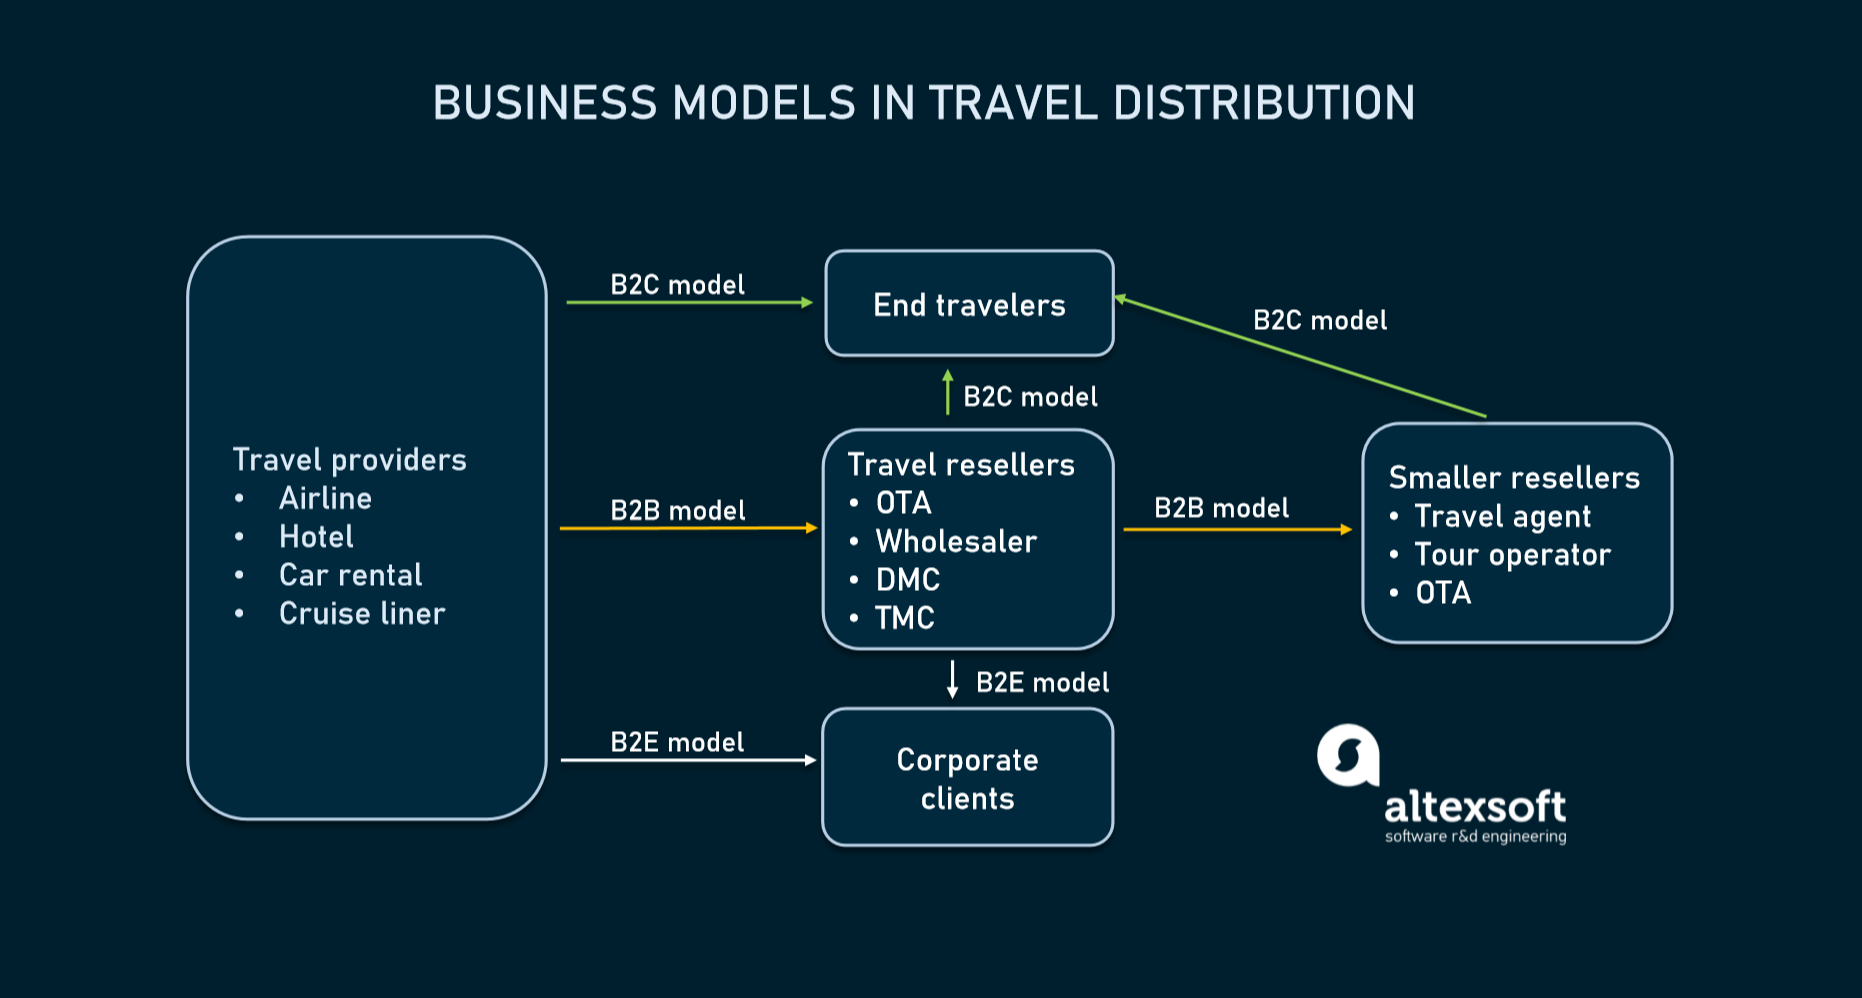 Sales channels in travel product distribution